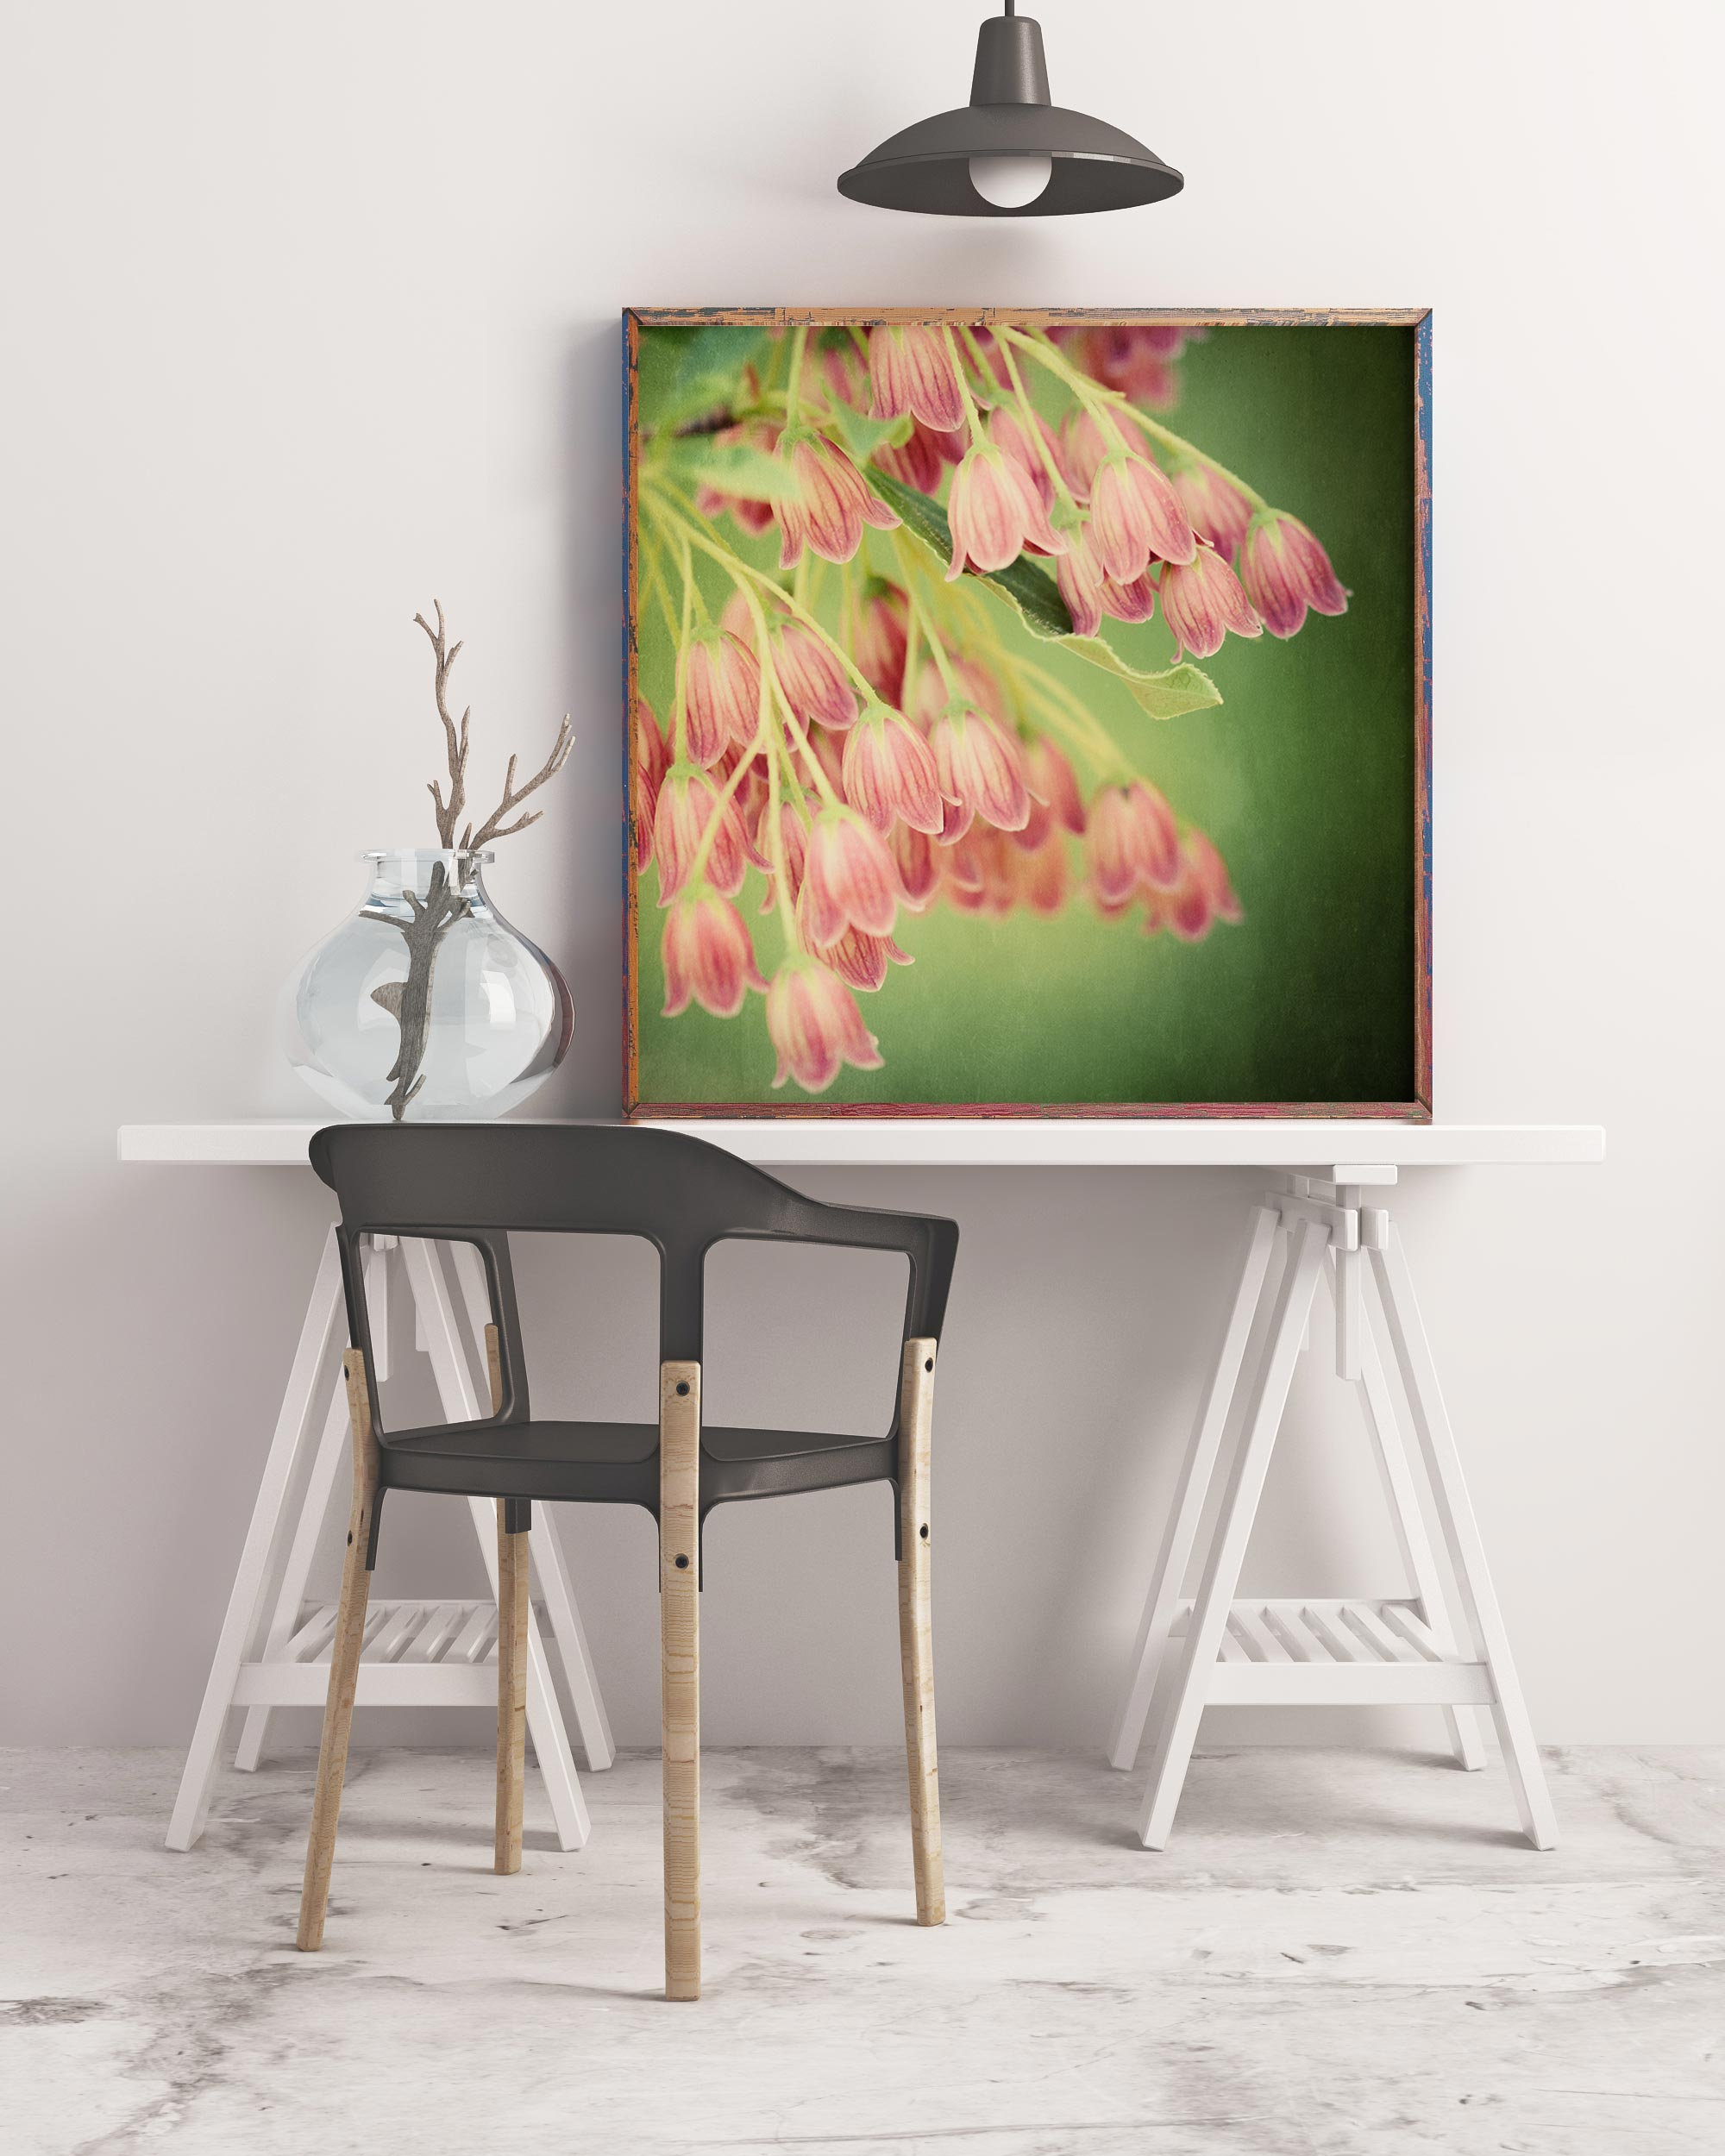 Sample framed mockup of enkianthus flower art print